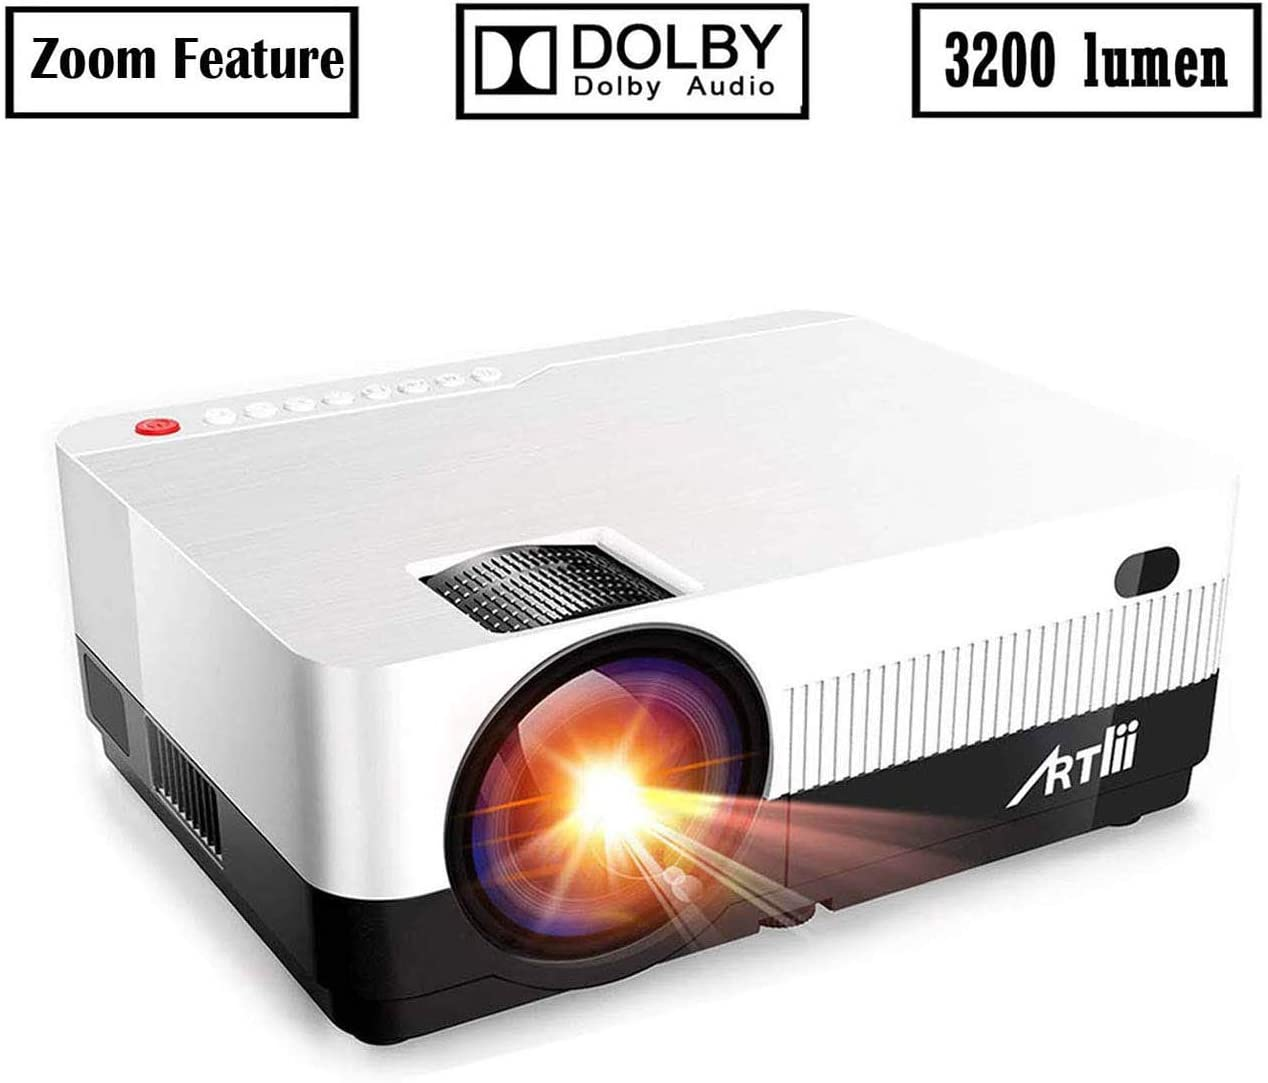 Portable Projector - Artlii 3200 Lumen Mini Projector for iPhone and Smartphone,1080P Support HD Projector with 180